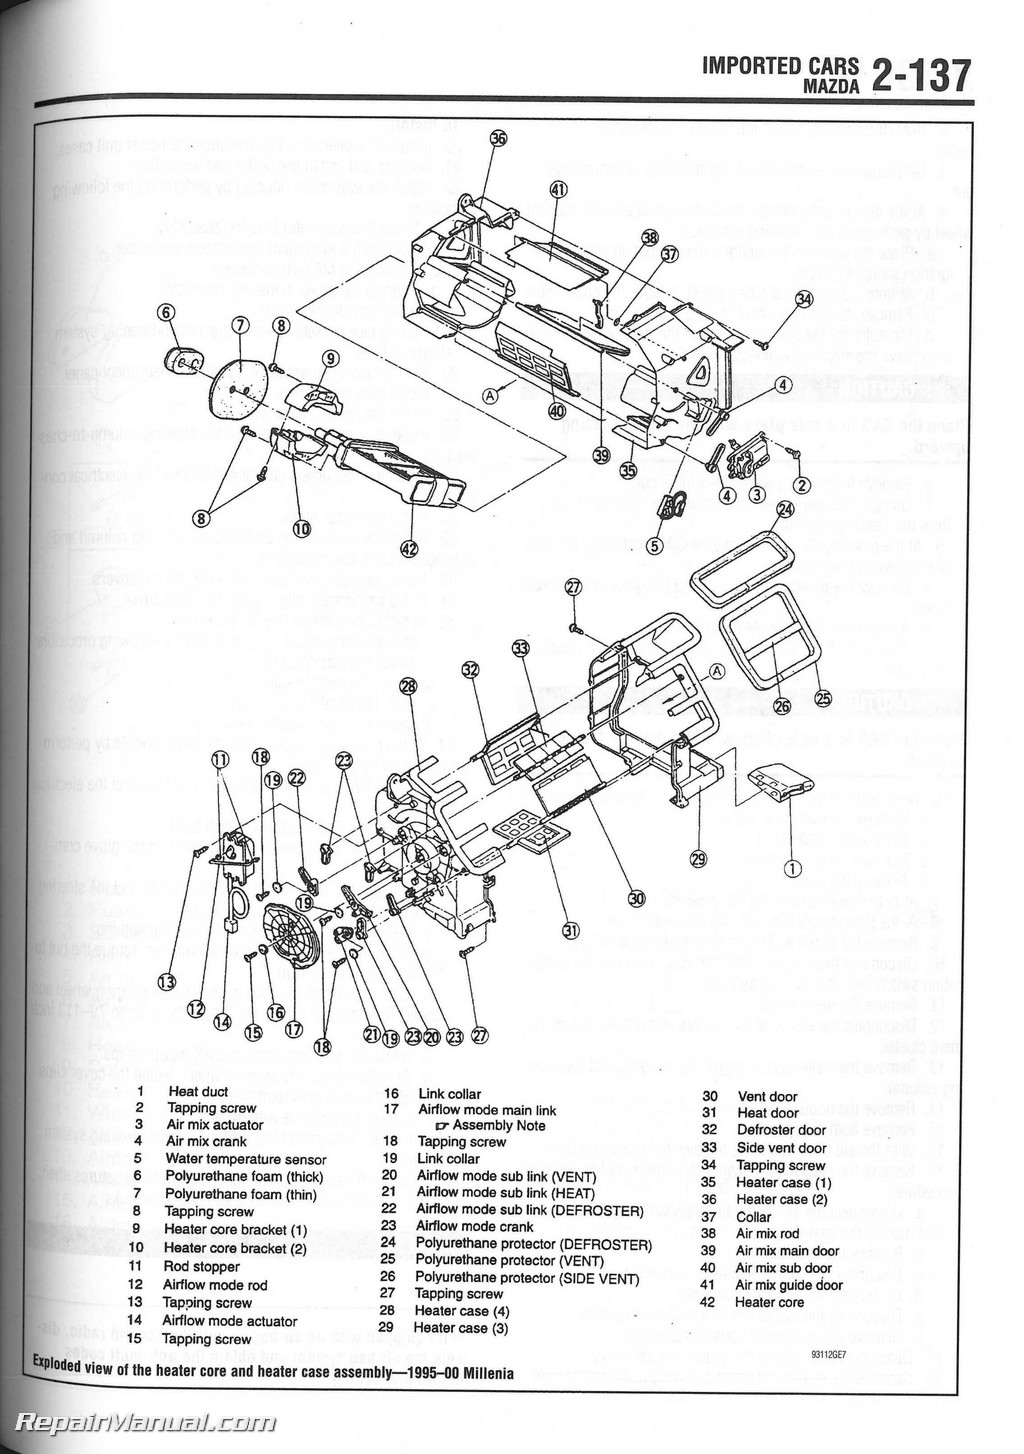 Plymouth Acclaim Fuse Box Chilton 1990 2000 Heater Core Installation Manual